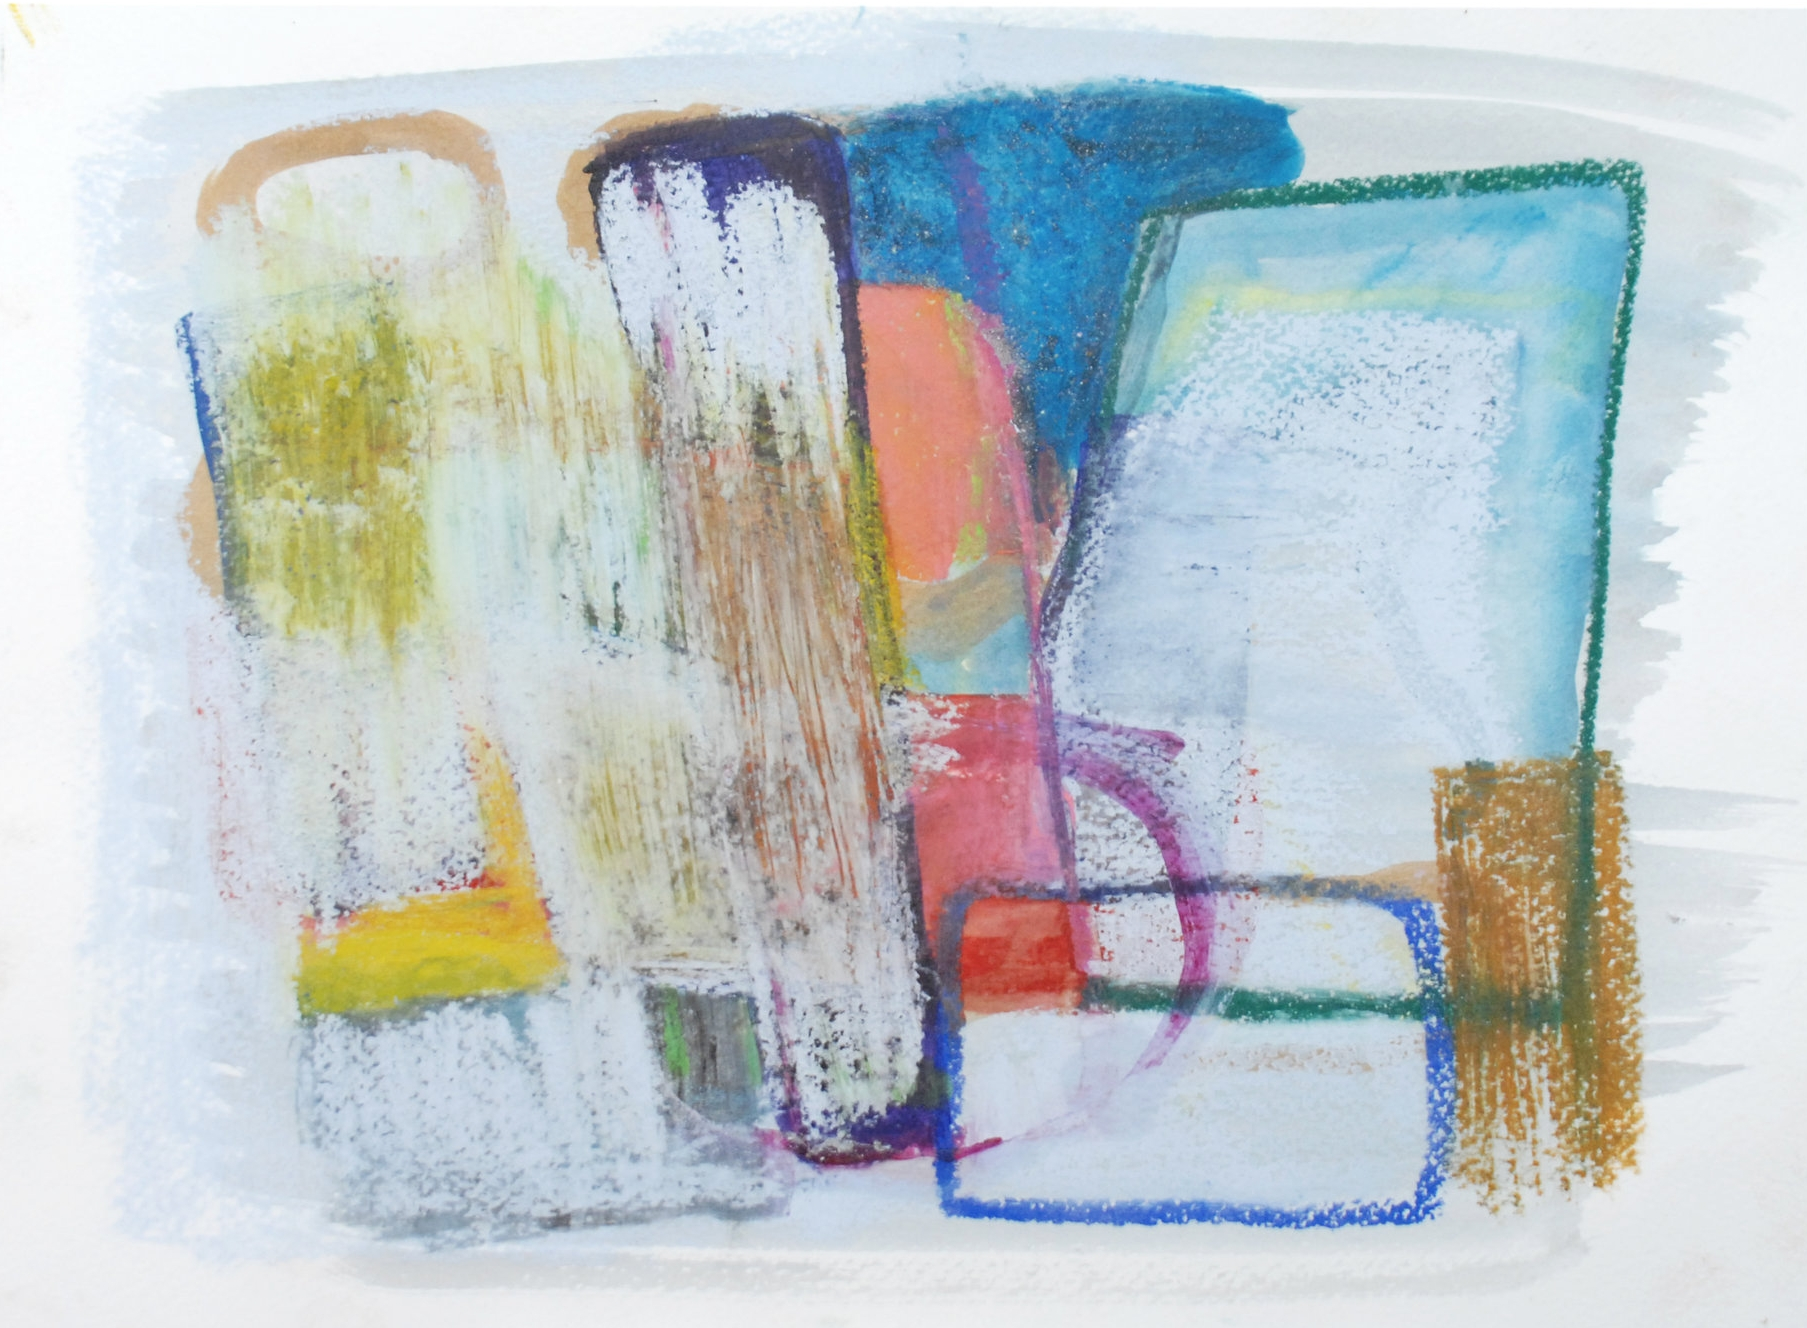 Change - the Only Certainty - Mixed Media on Paper   29.5cm x 21cm   2012